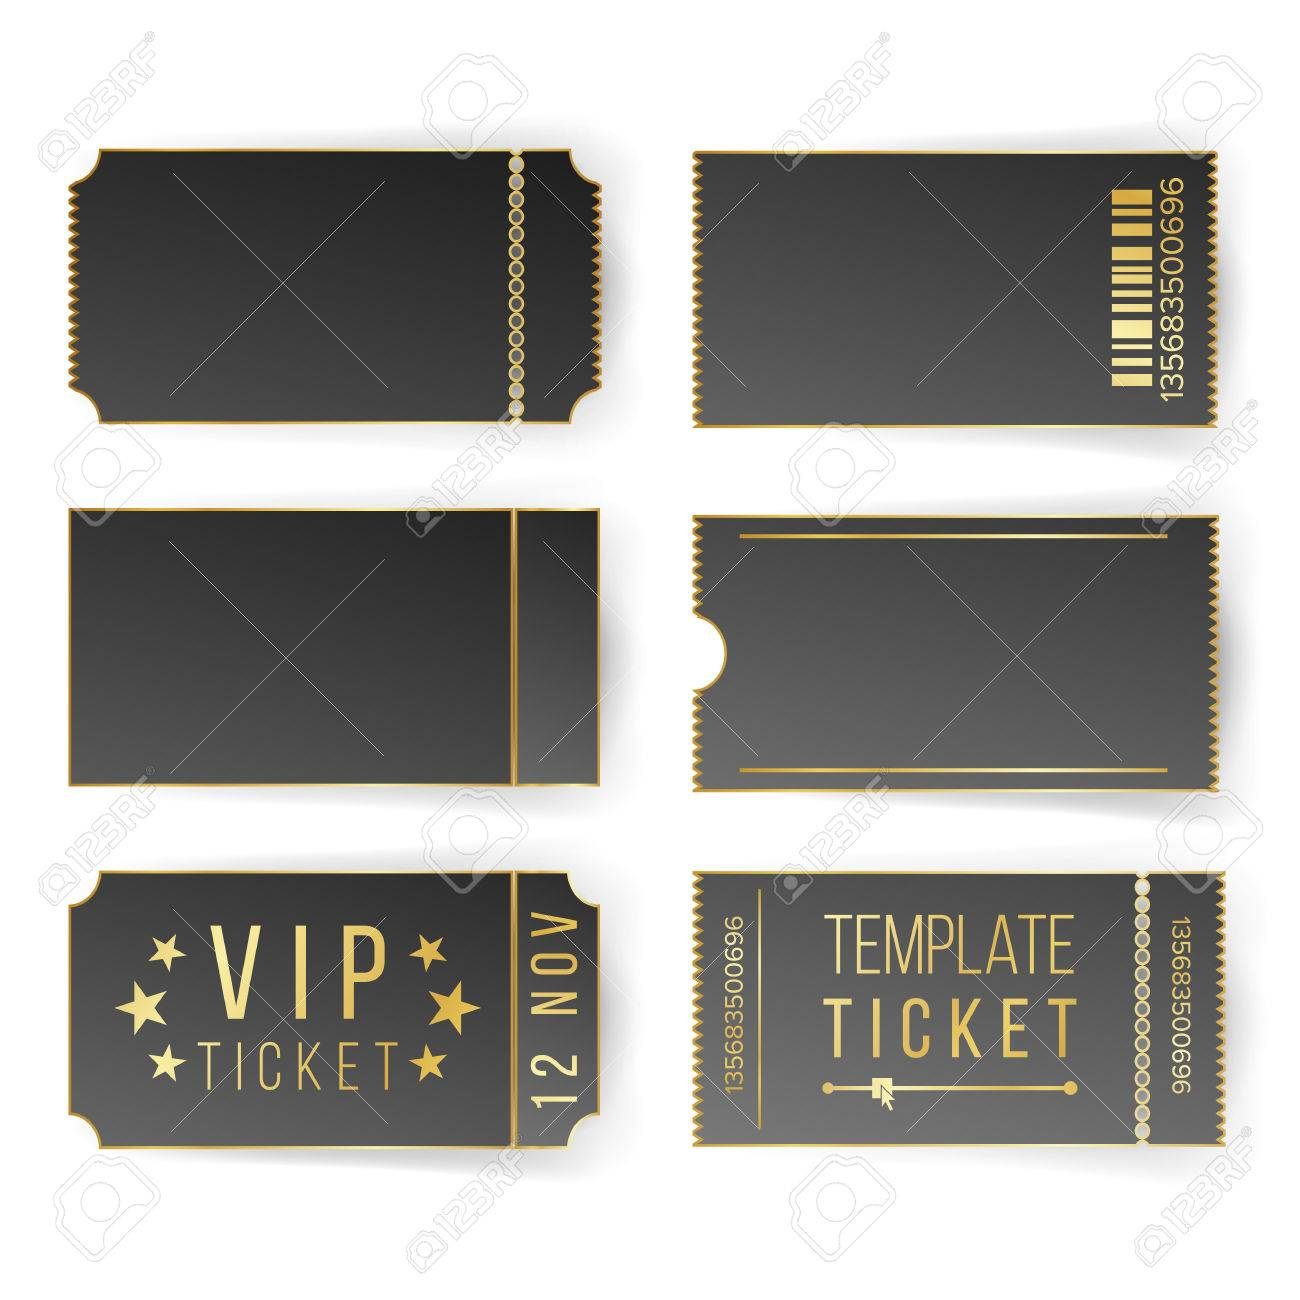 Vip Ticket Template Vector. Empty Black Tickets And Coupons Blank ...